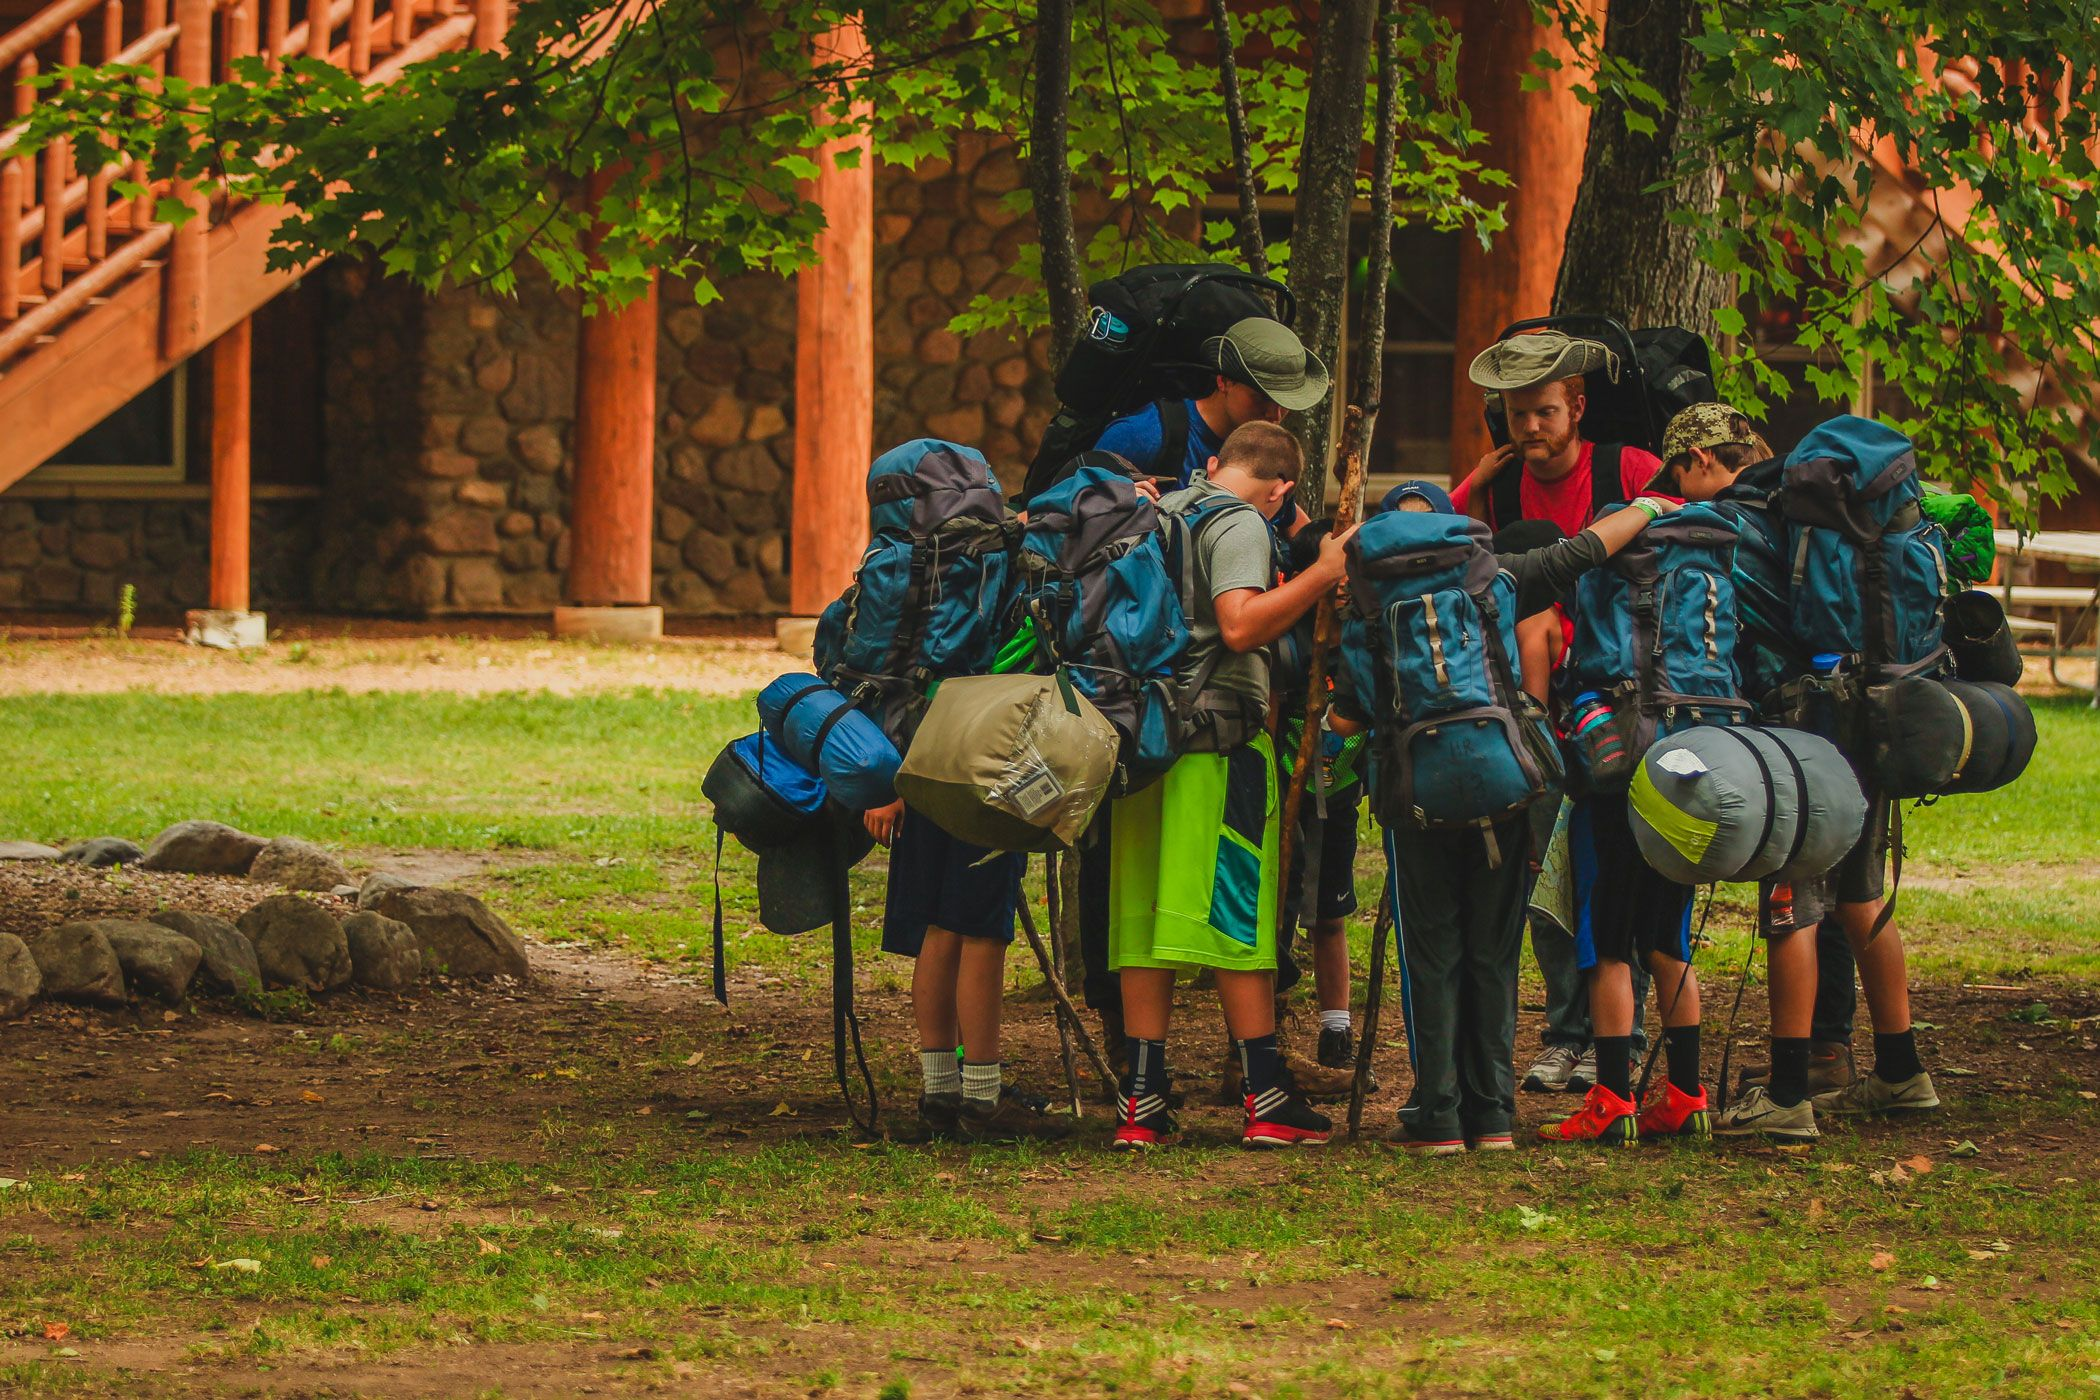 Campers gather in a circle before they depart to pray.